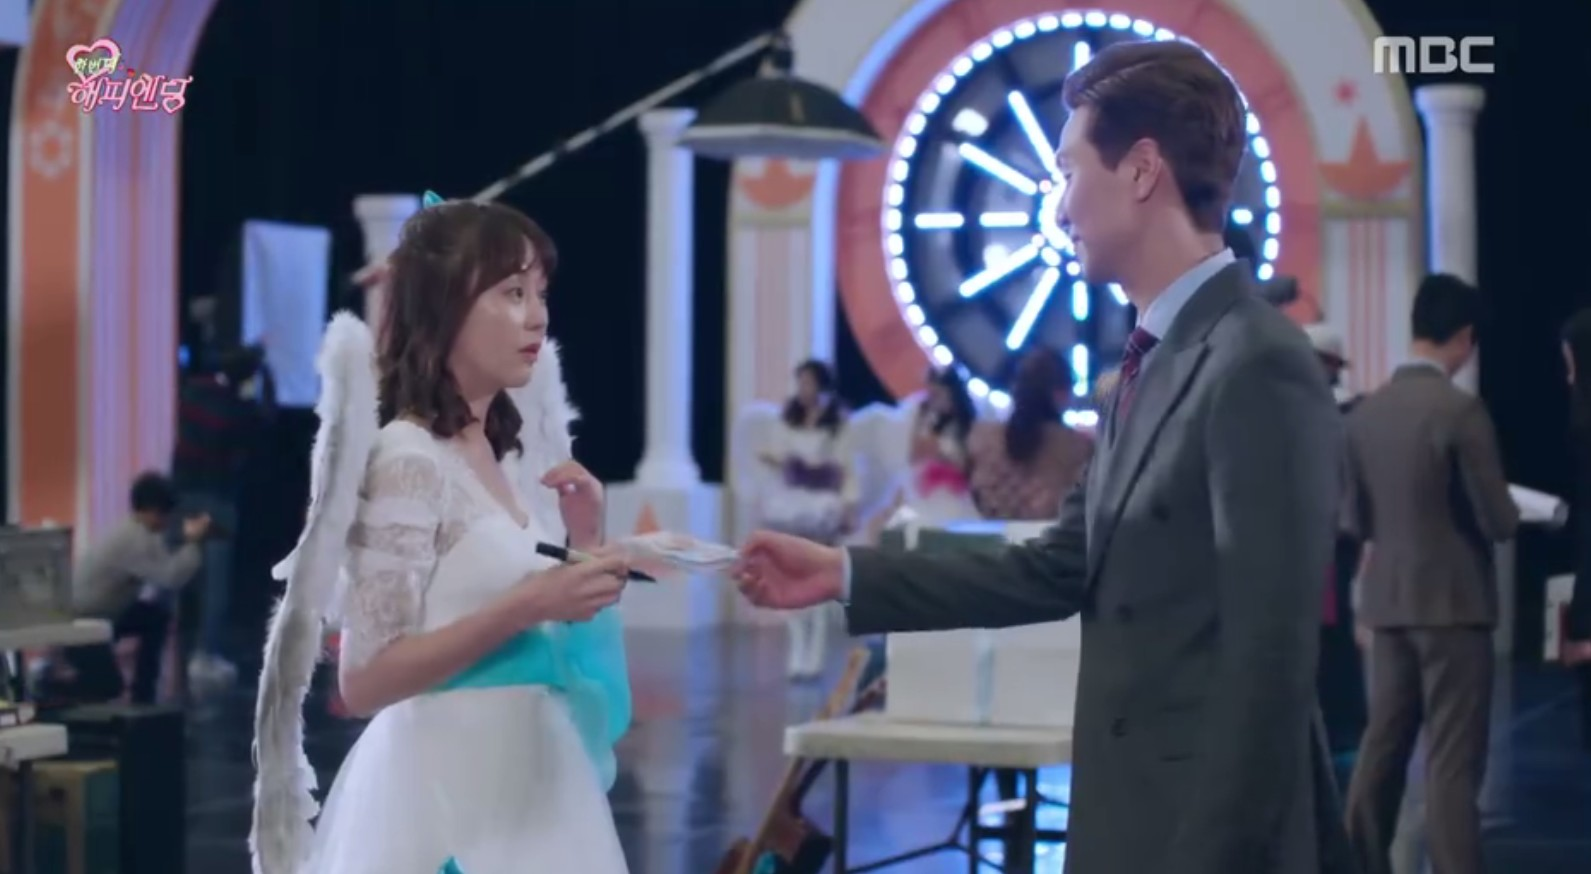 [WEEK AFTER WEEK] One more happy ending • ep7 & 8 ~ Corée du sud